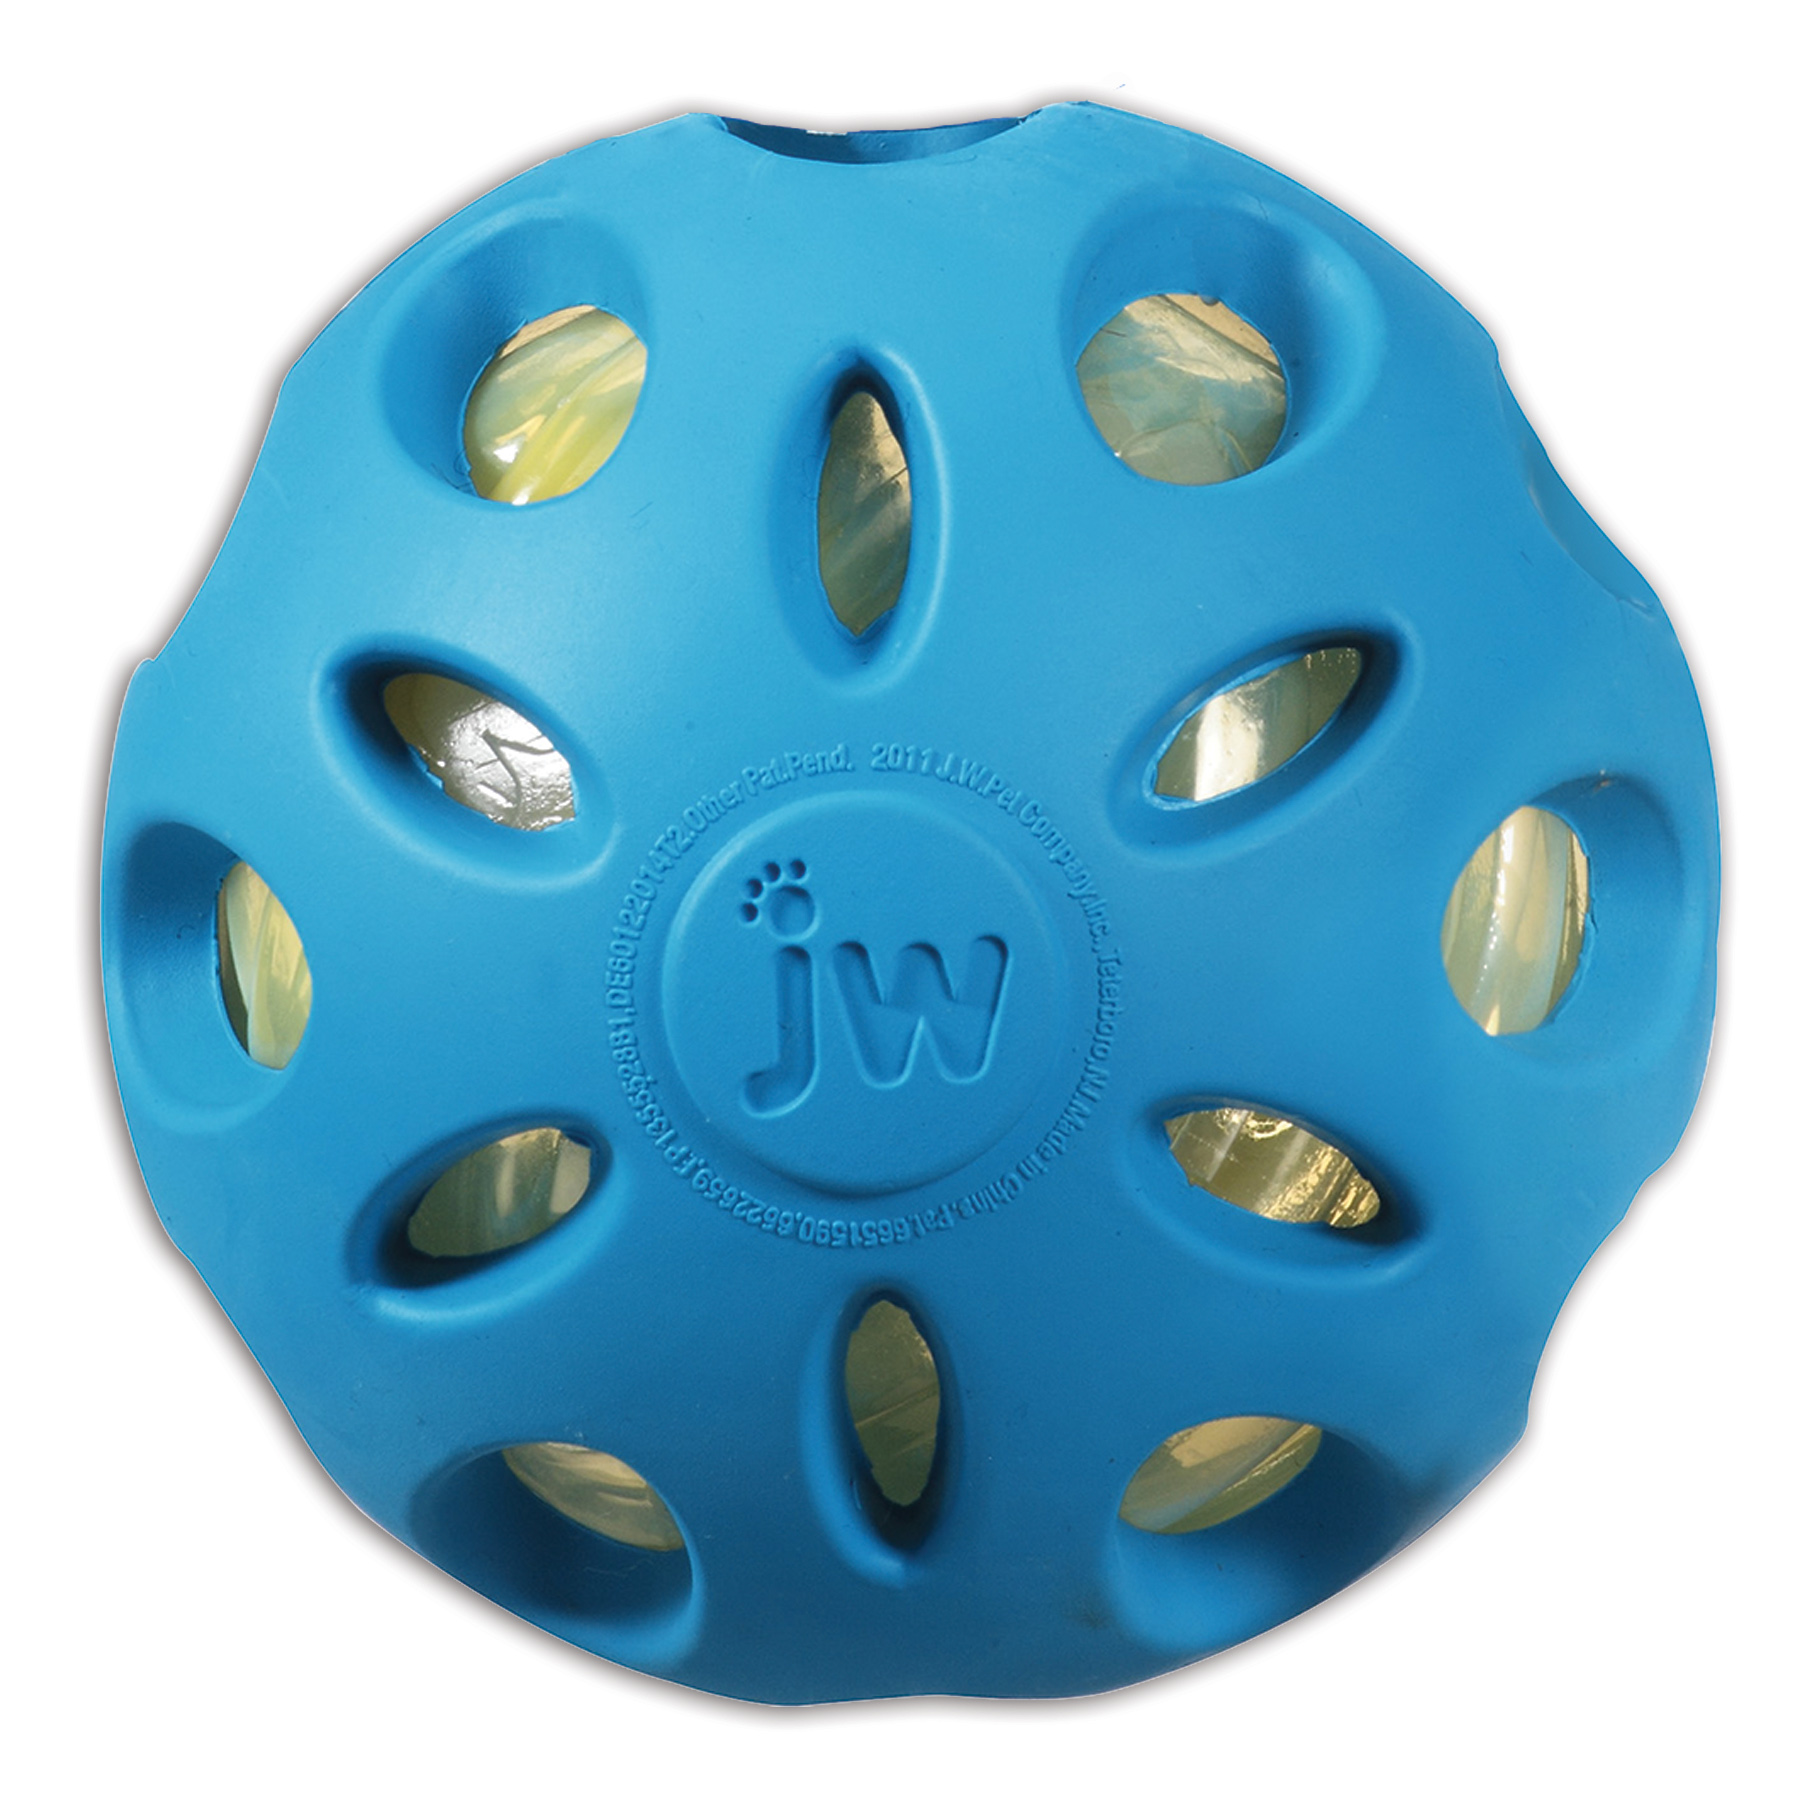 Jw Crackle Heads Crackle Dog Ball, Large